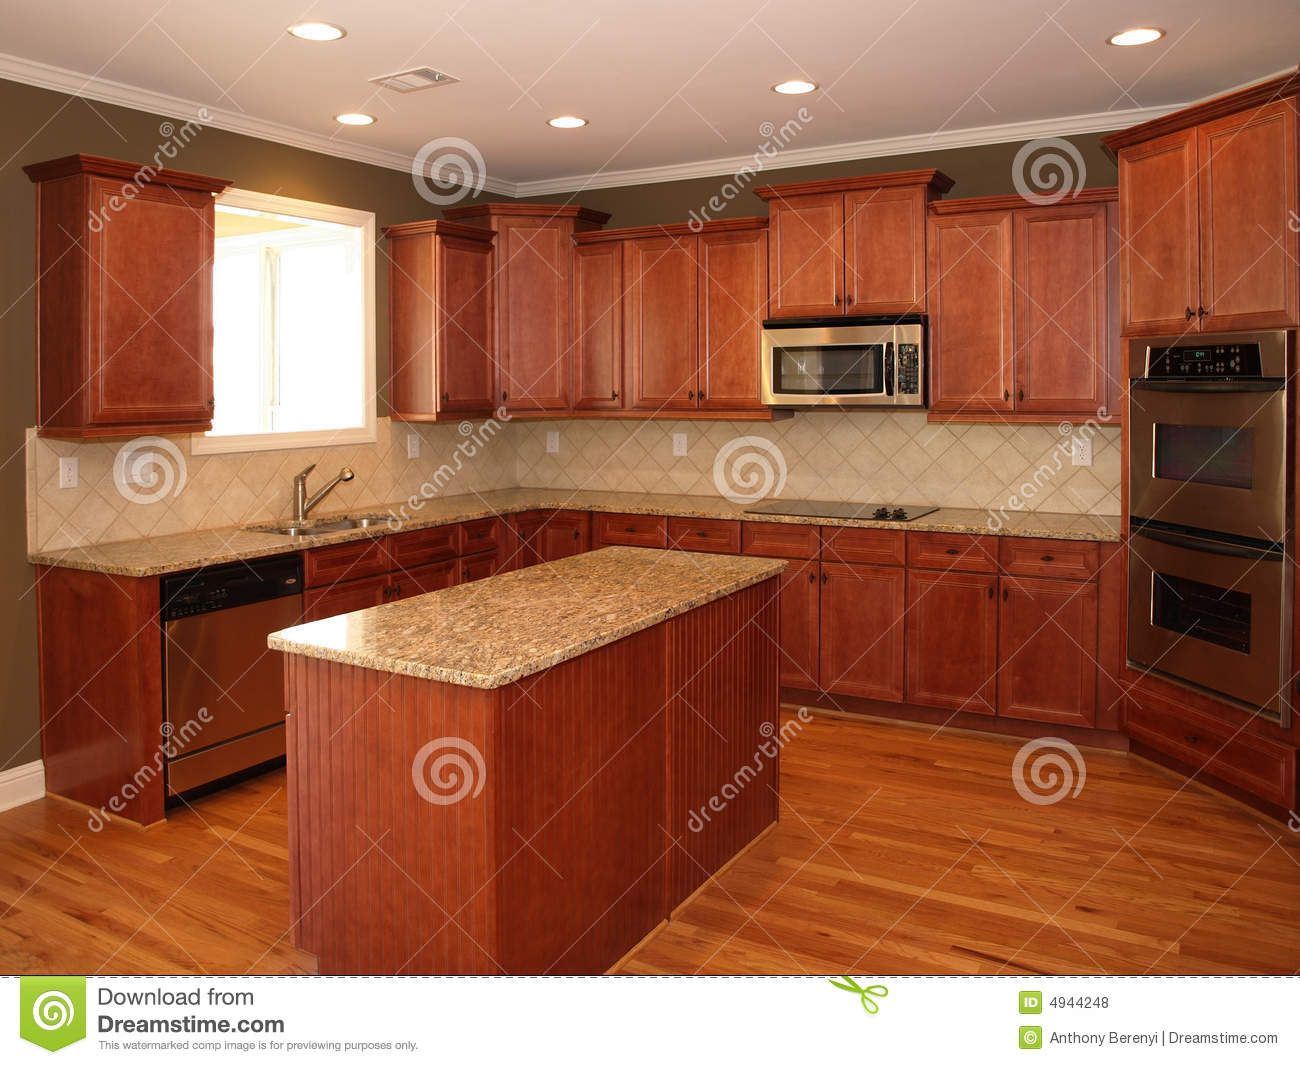 Luxury cherry wood kitchen with island stock photo image for Cherry wood kitchen cabinets price